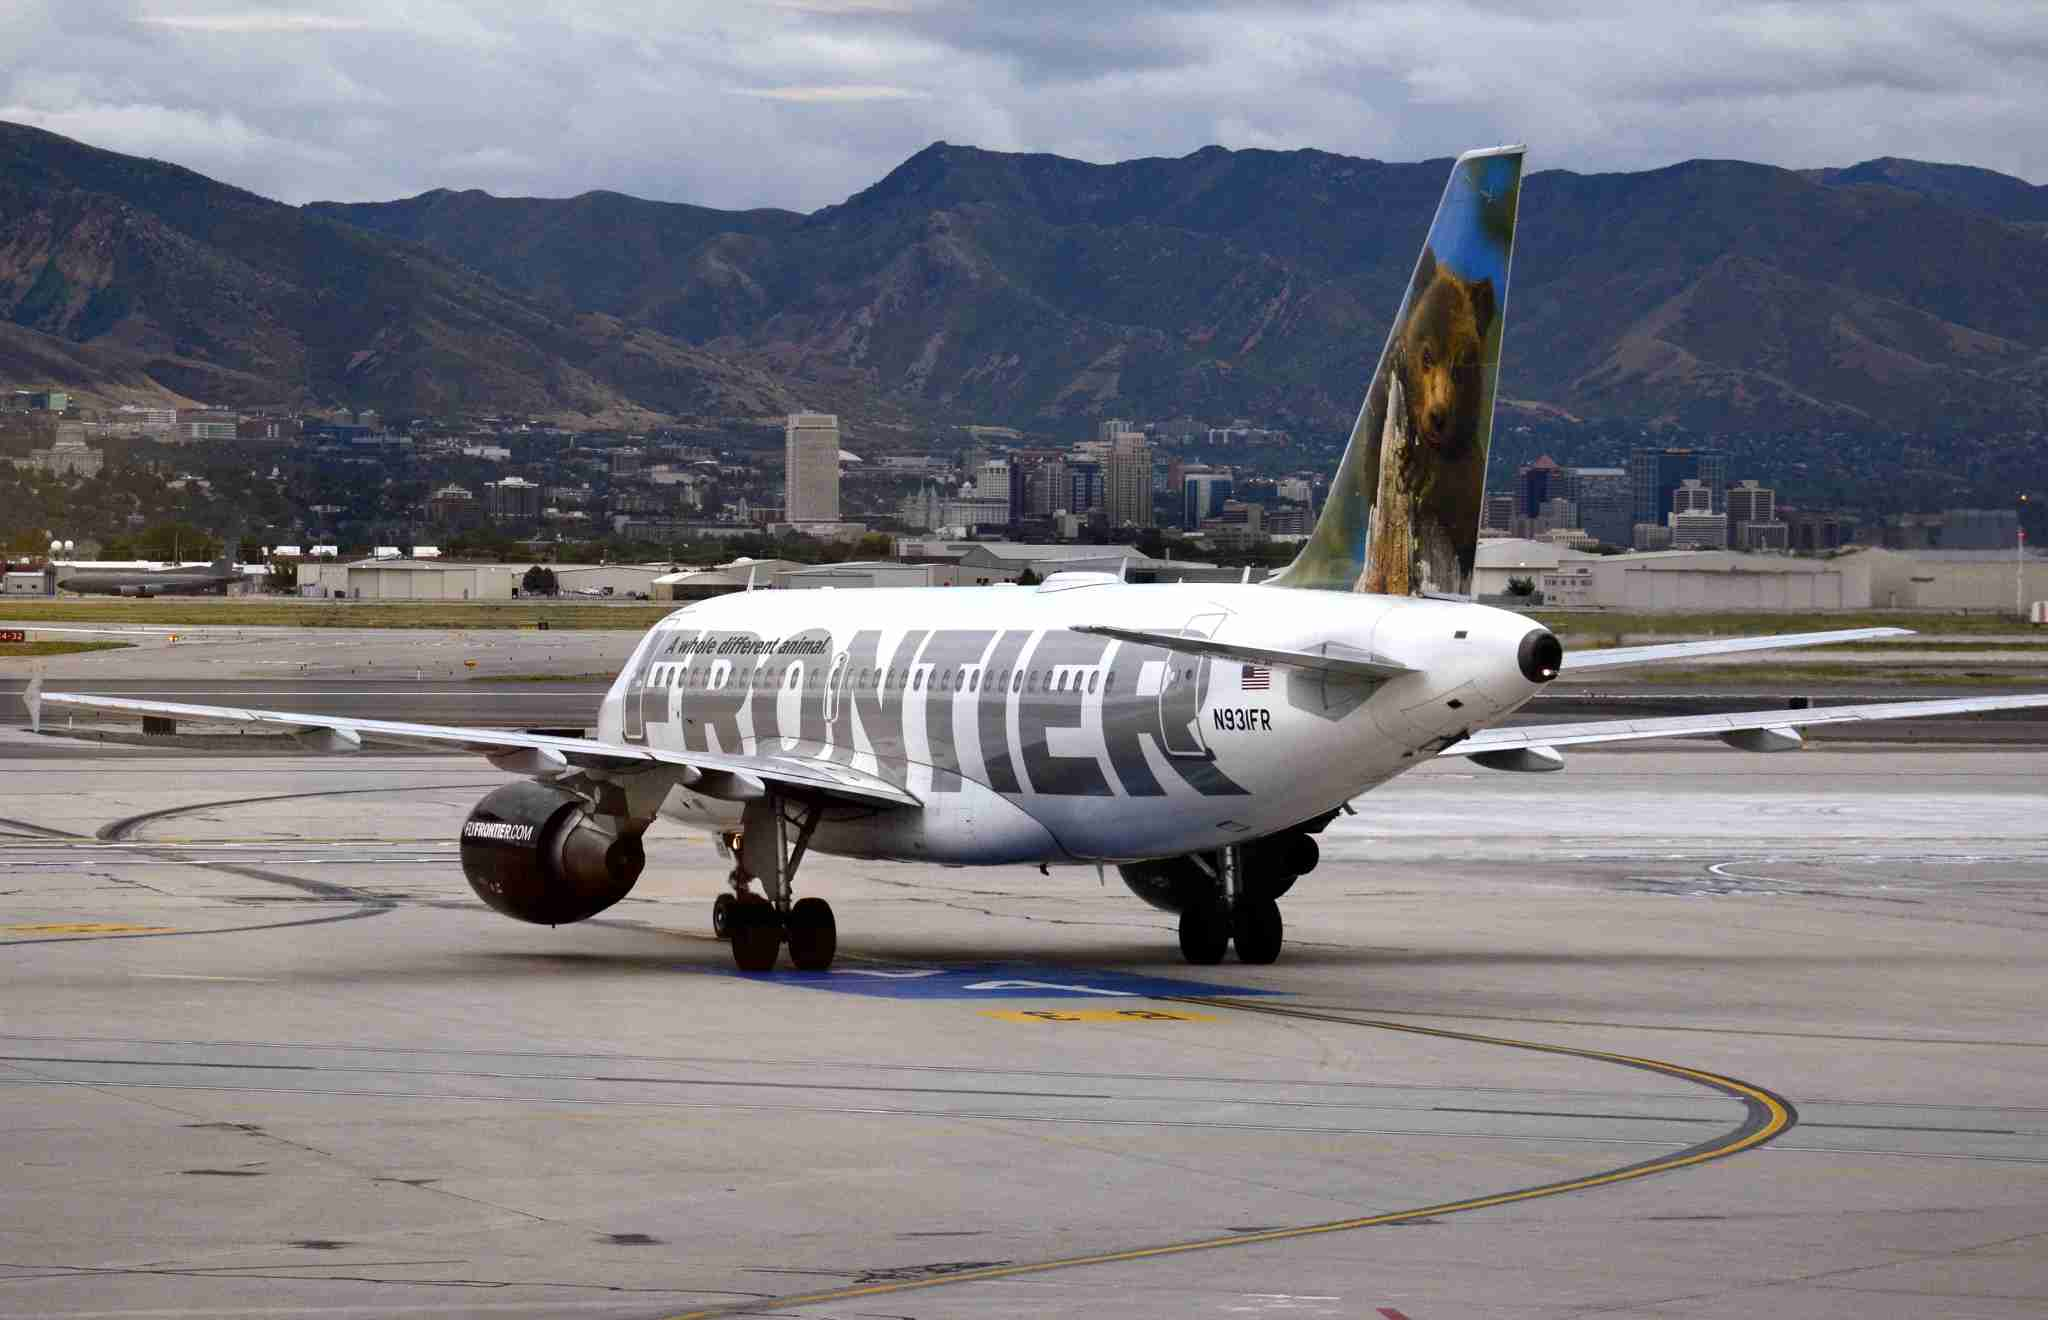 SALT LAKE CITY, UT - SEPTEMBER 28, 2014: A Frontier Airlines Airbus A319 taxis toward the runway at Salt Lake City International Airport in Utah. (Photo by Robert Alexander/Getty Images)